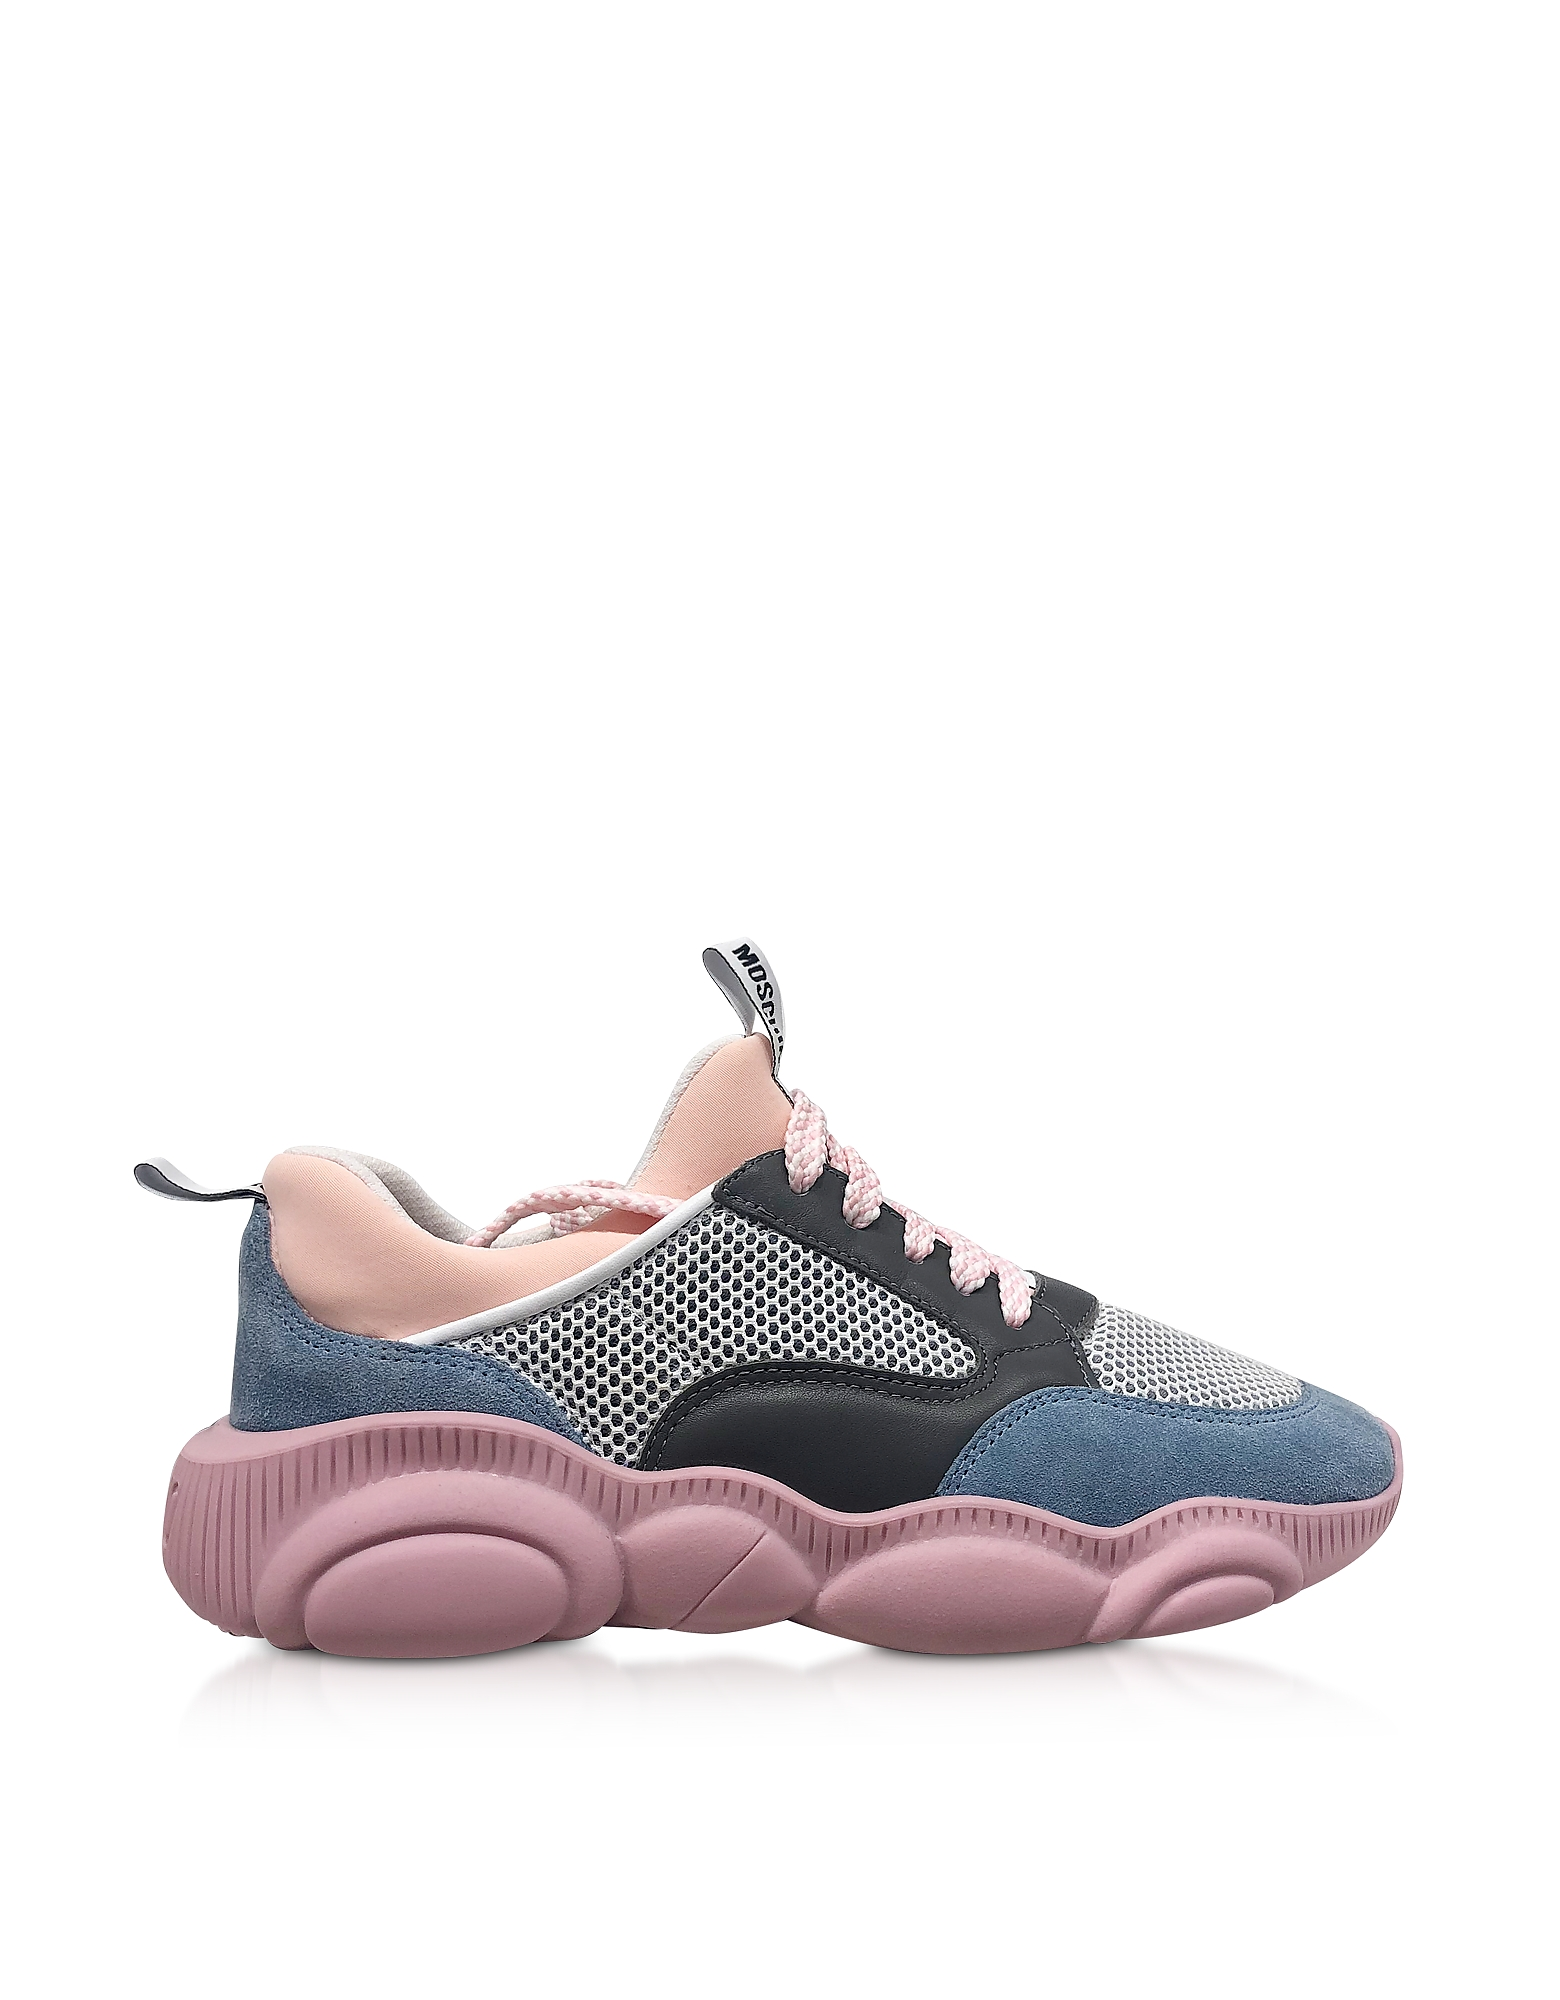 Teddy Run Gray Mesh and Pink Leather Women's Sneakers